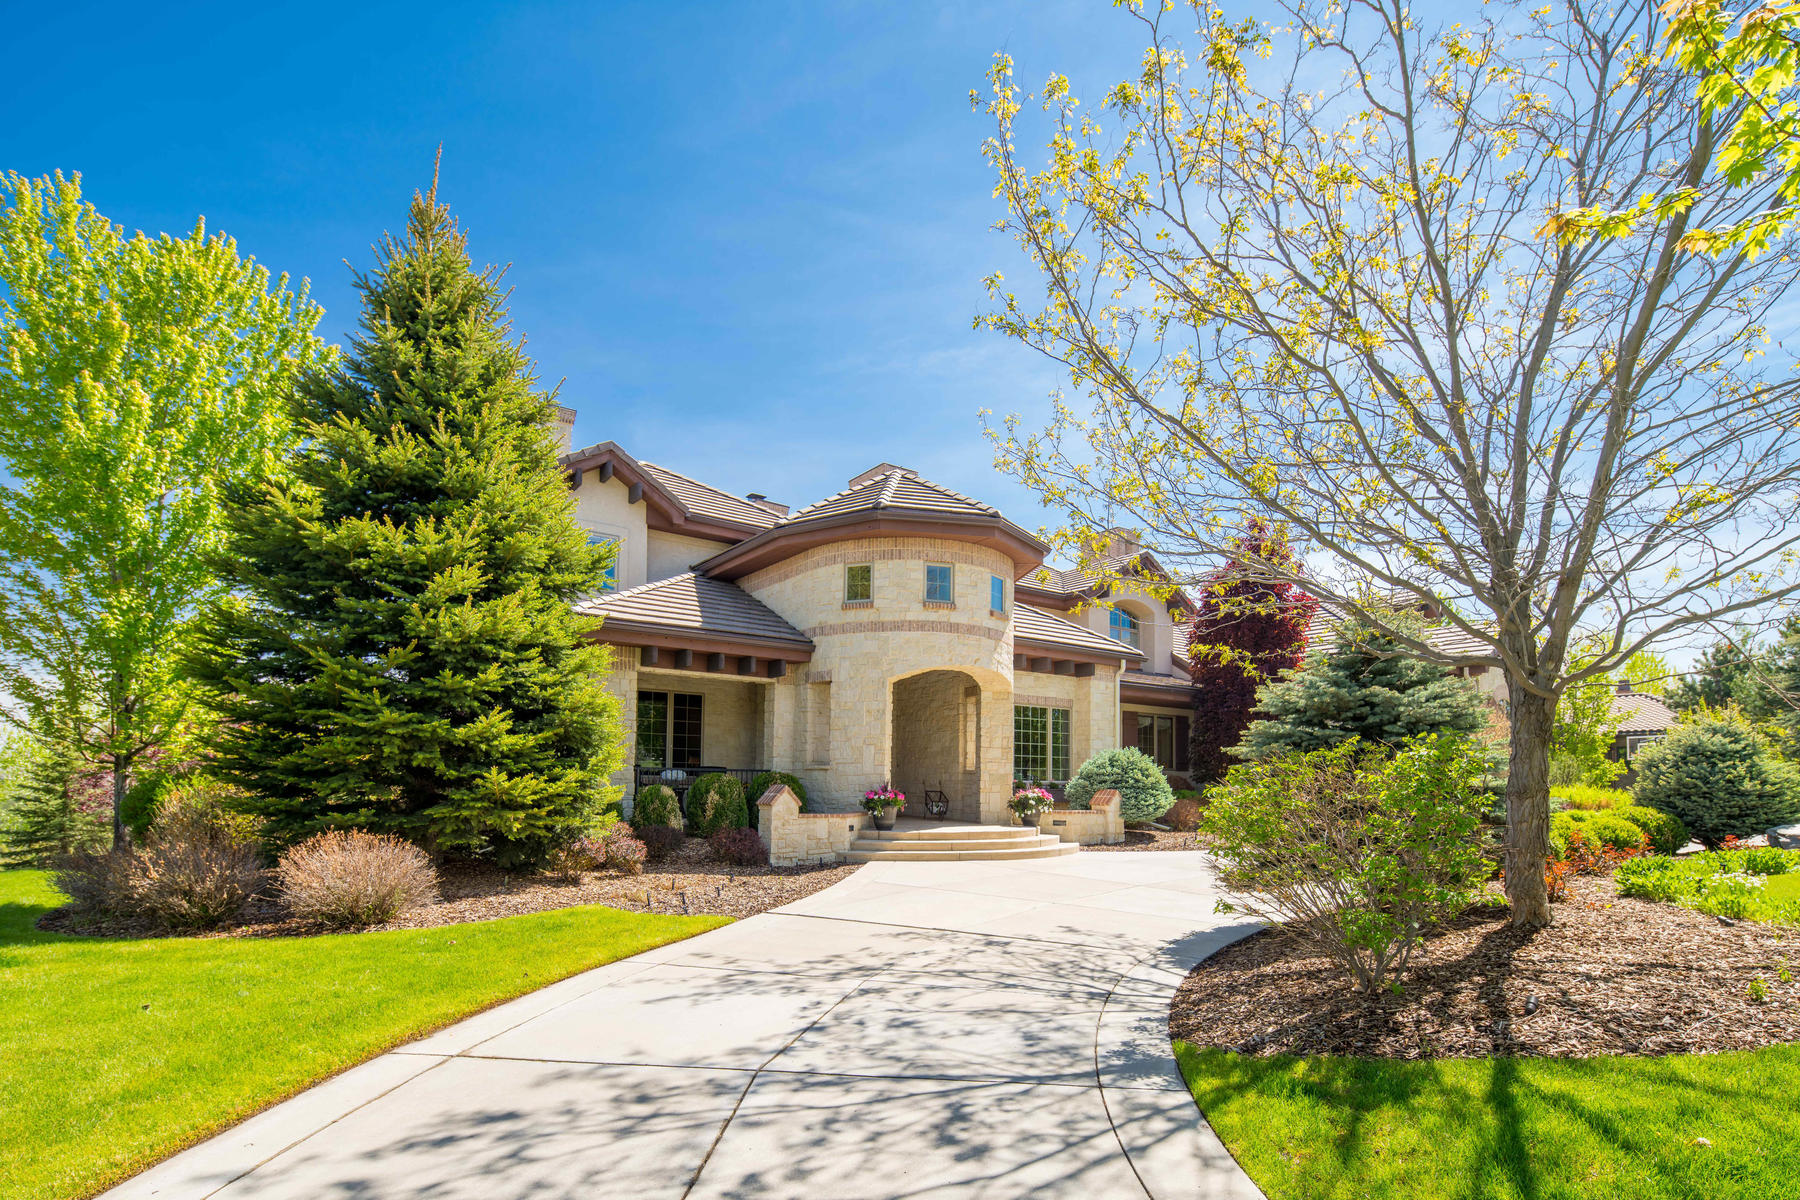 Single Family Homes for Sale at Spectacular Estate on One of the Most Beautiful Settings You Can Imagine! 5480 S Highline Circle Greenwood Village, Colorado 80121 United States